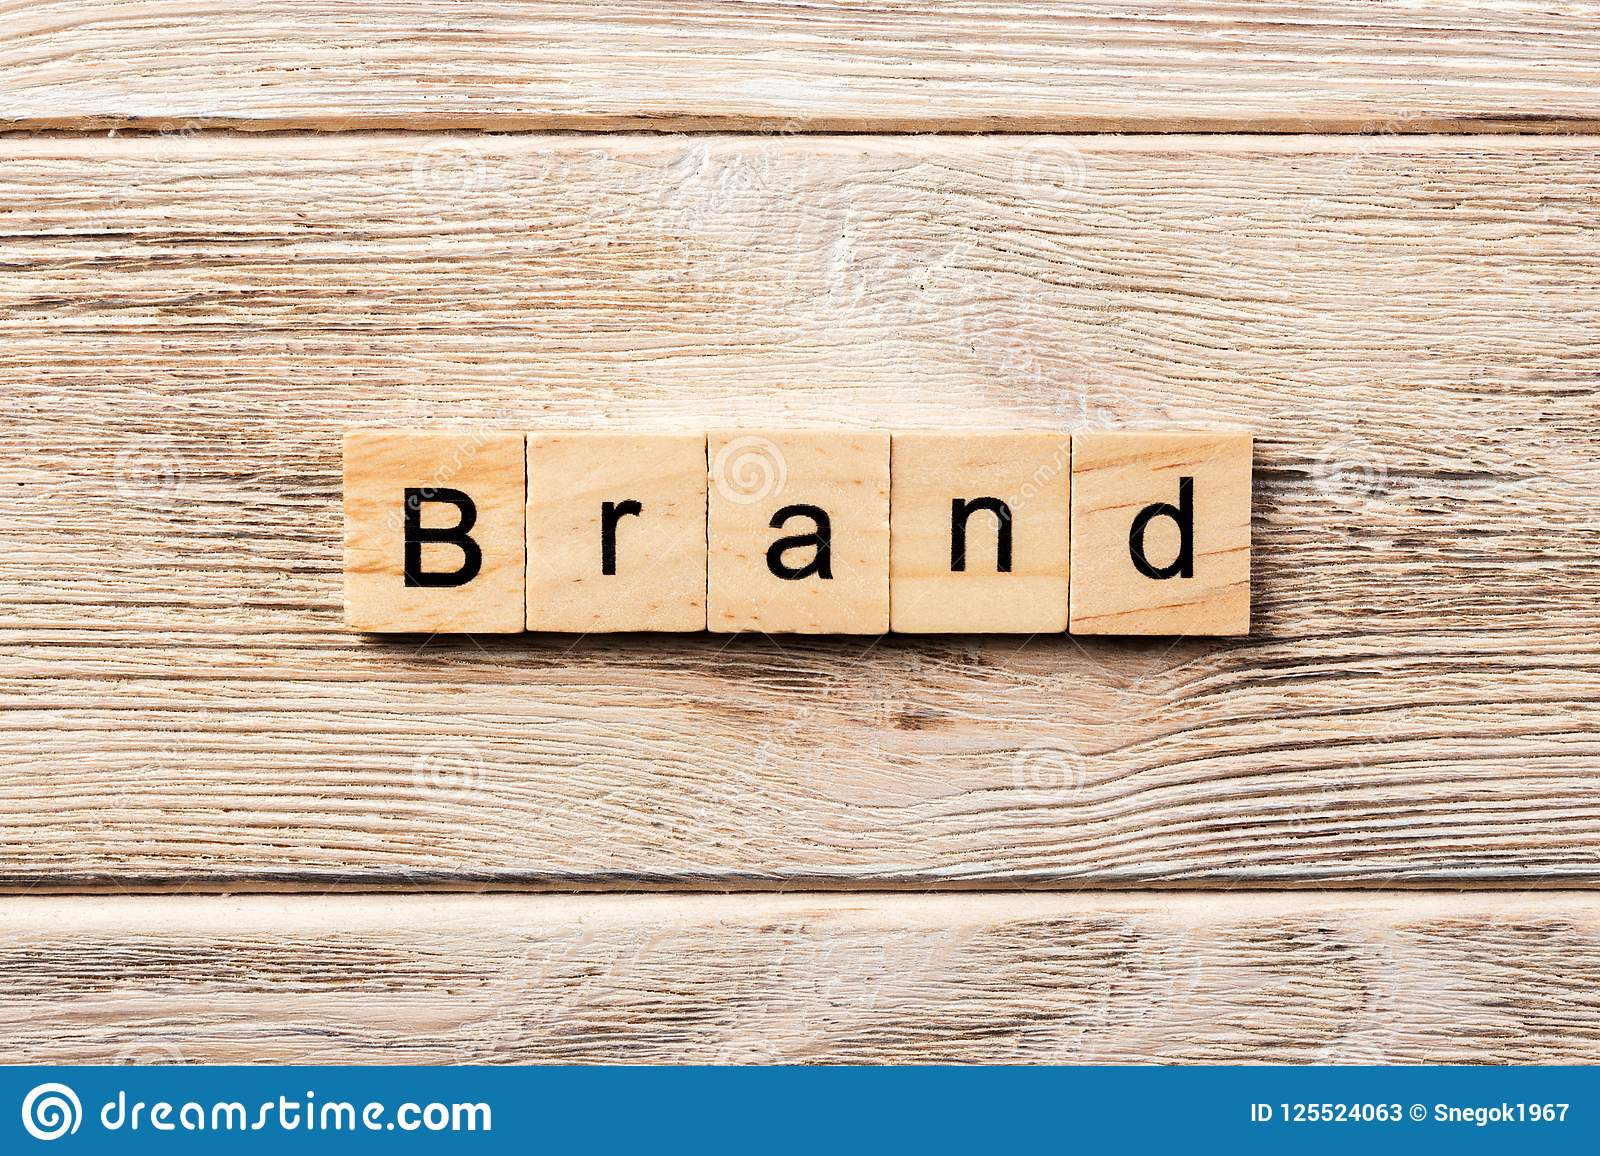 Brand word written on wood block. brand text on table, concept